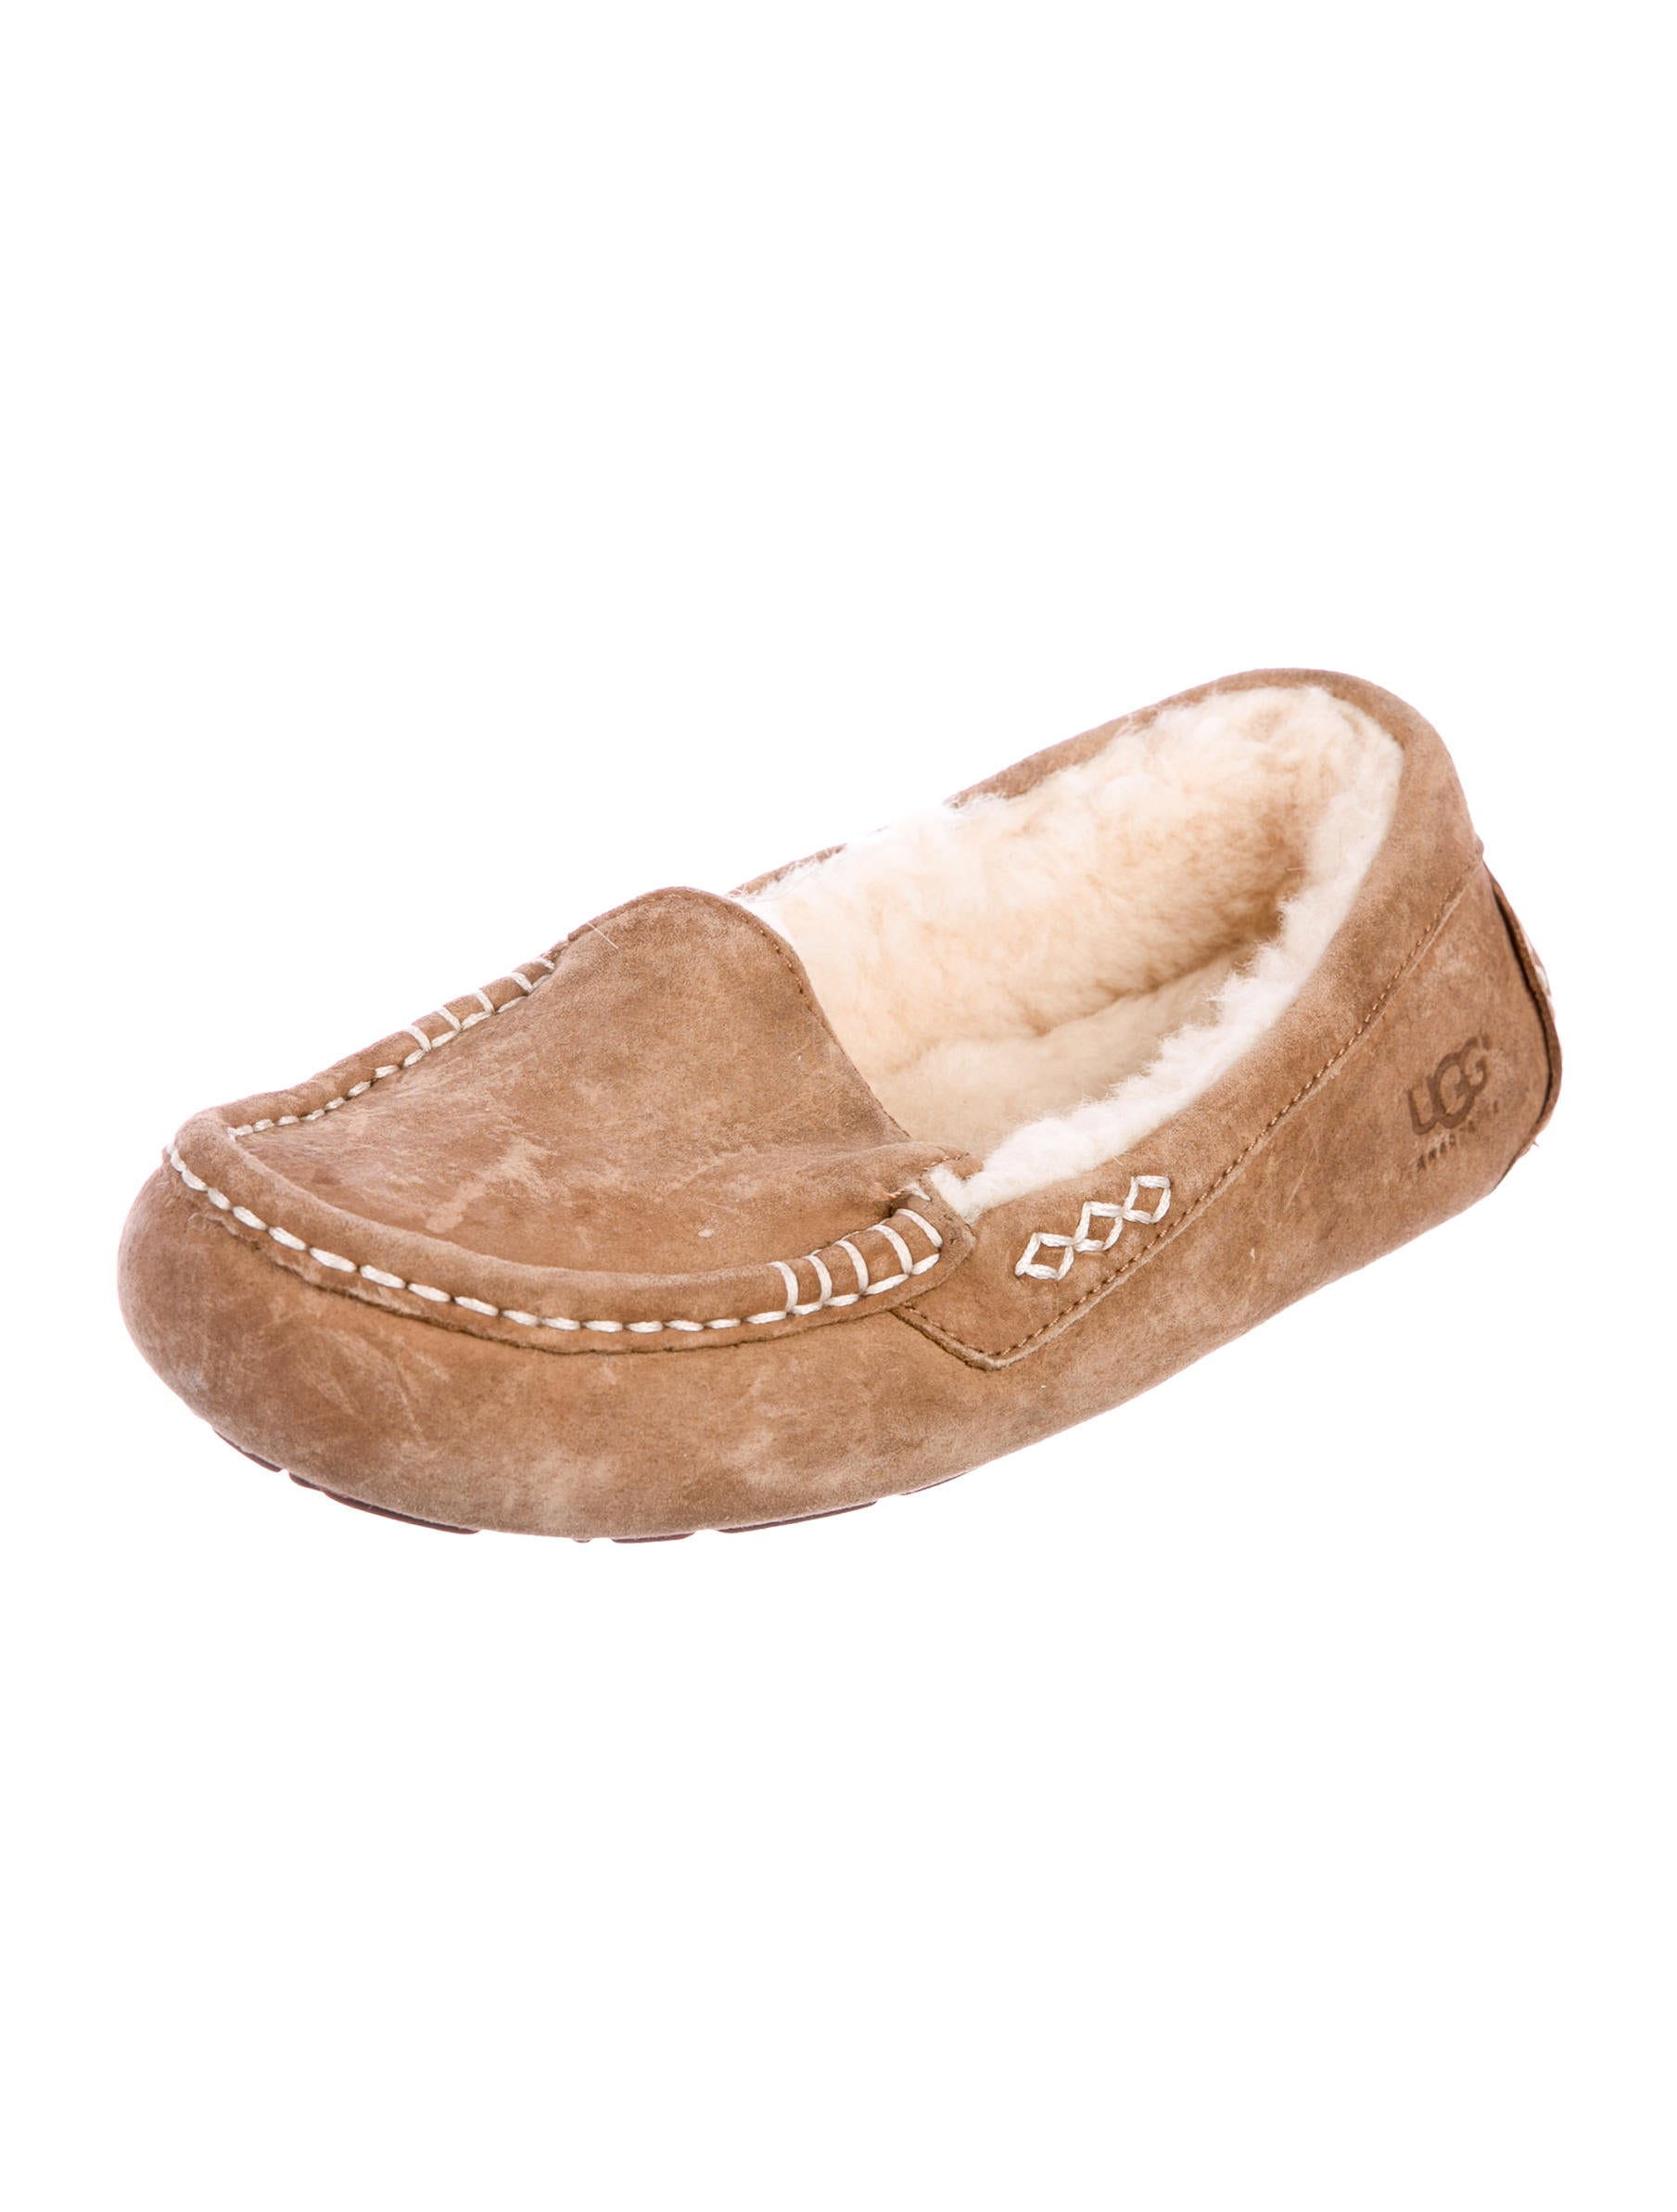 UGG Australia Shearling Round-Toe Moccasins buy cheap view new for sale cheap sale original RG7lJYMO